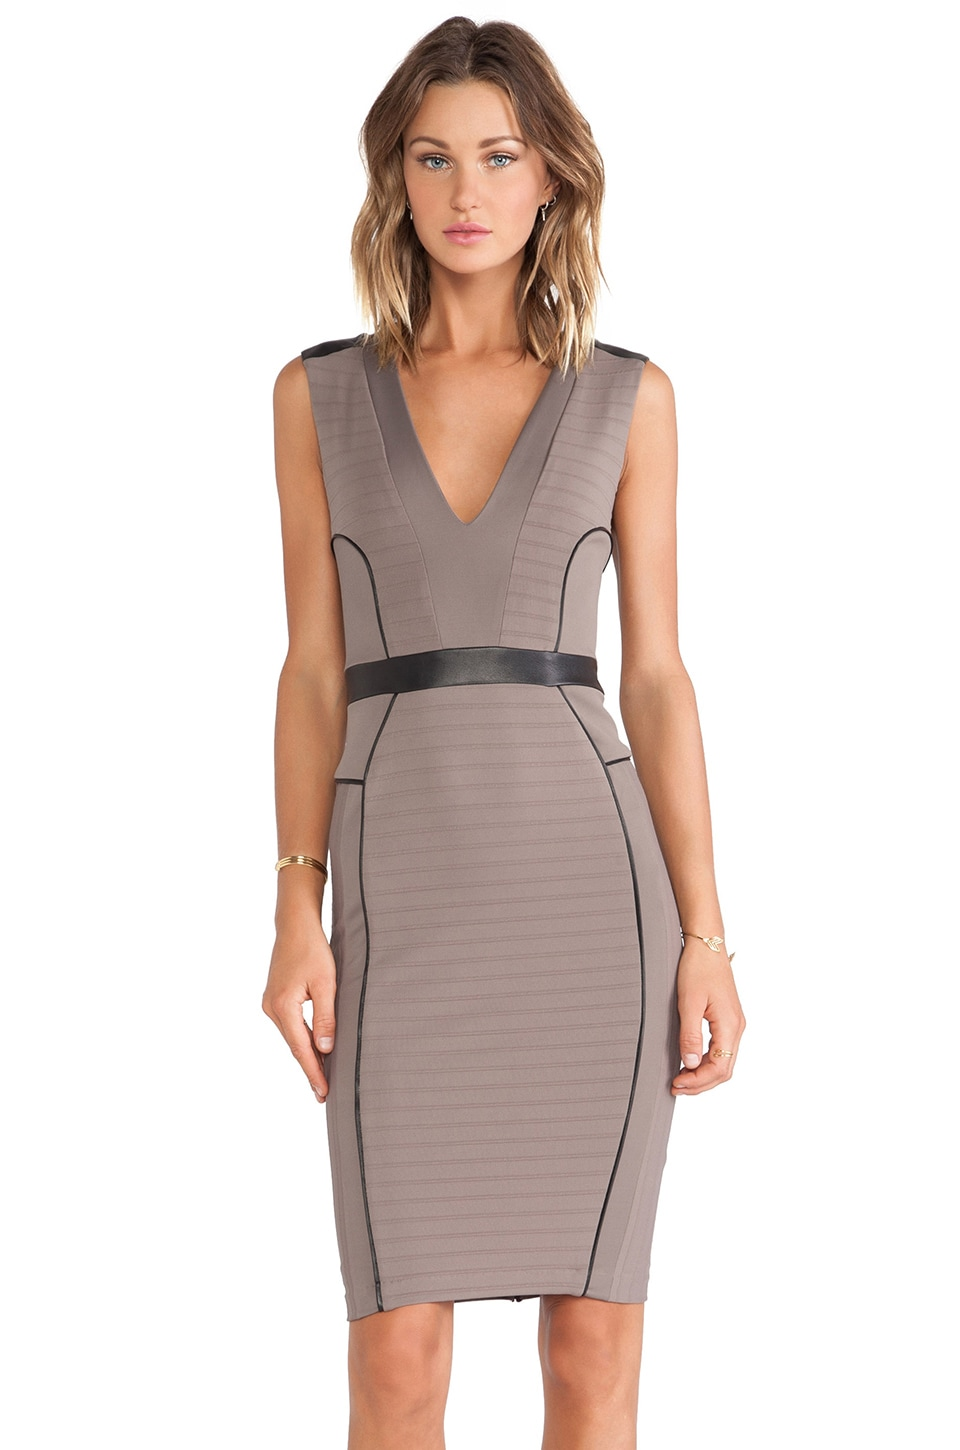 LaPina by David Helwani LaPina Kimberly V Neck Dress in Spice